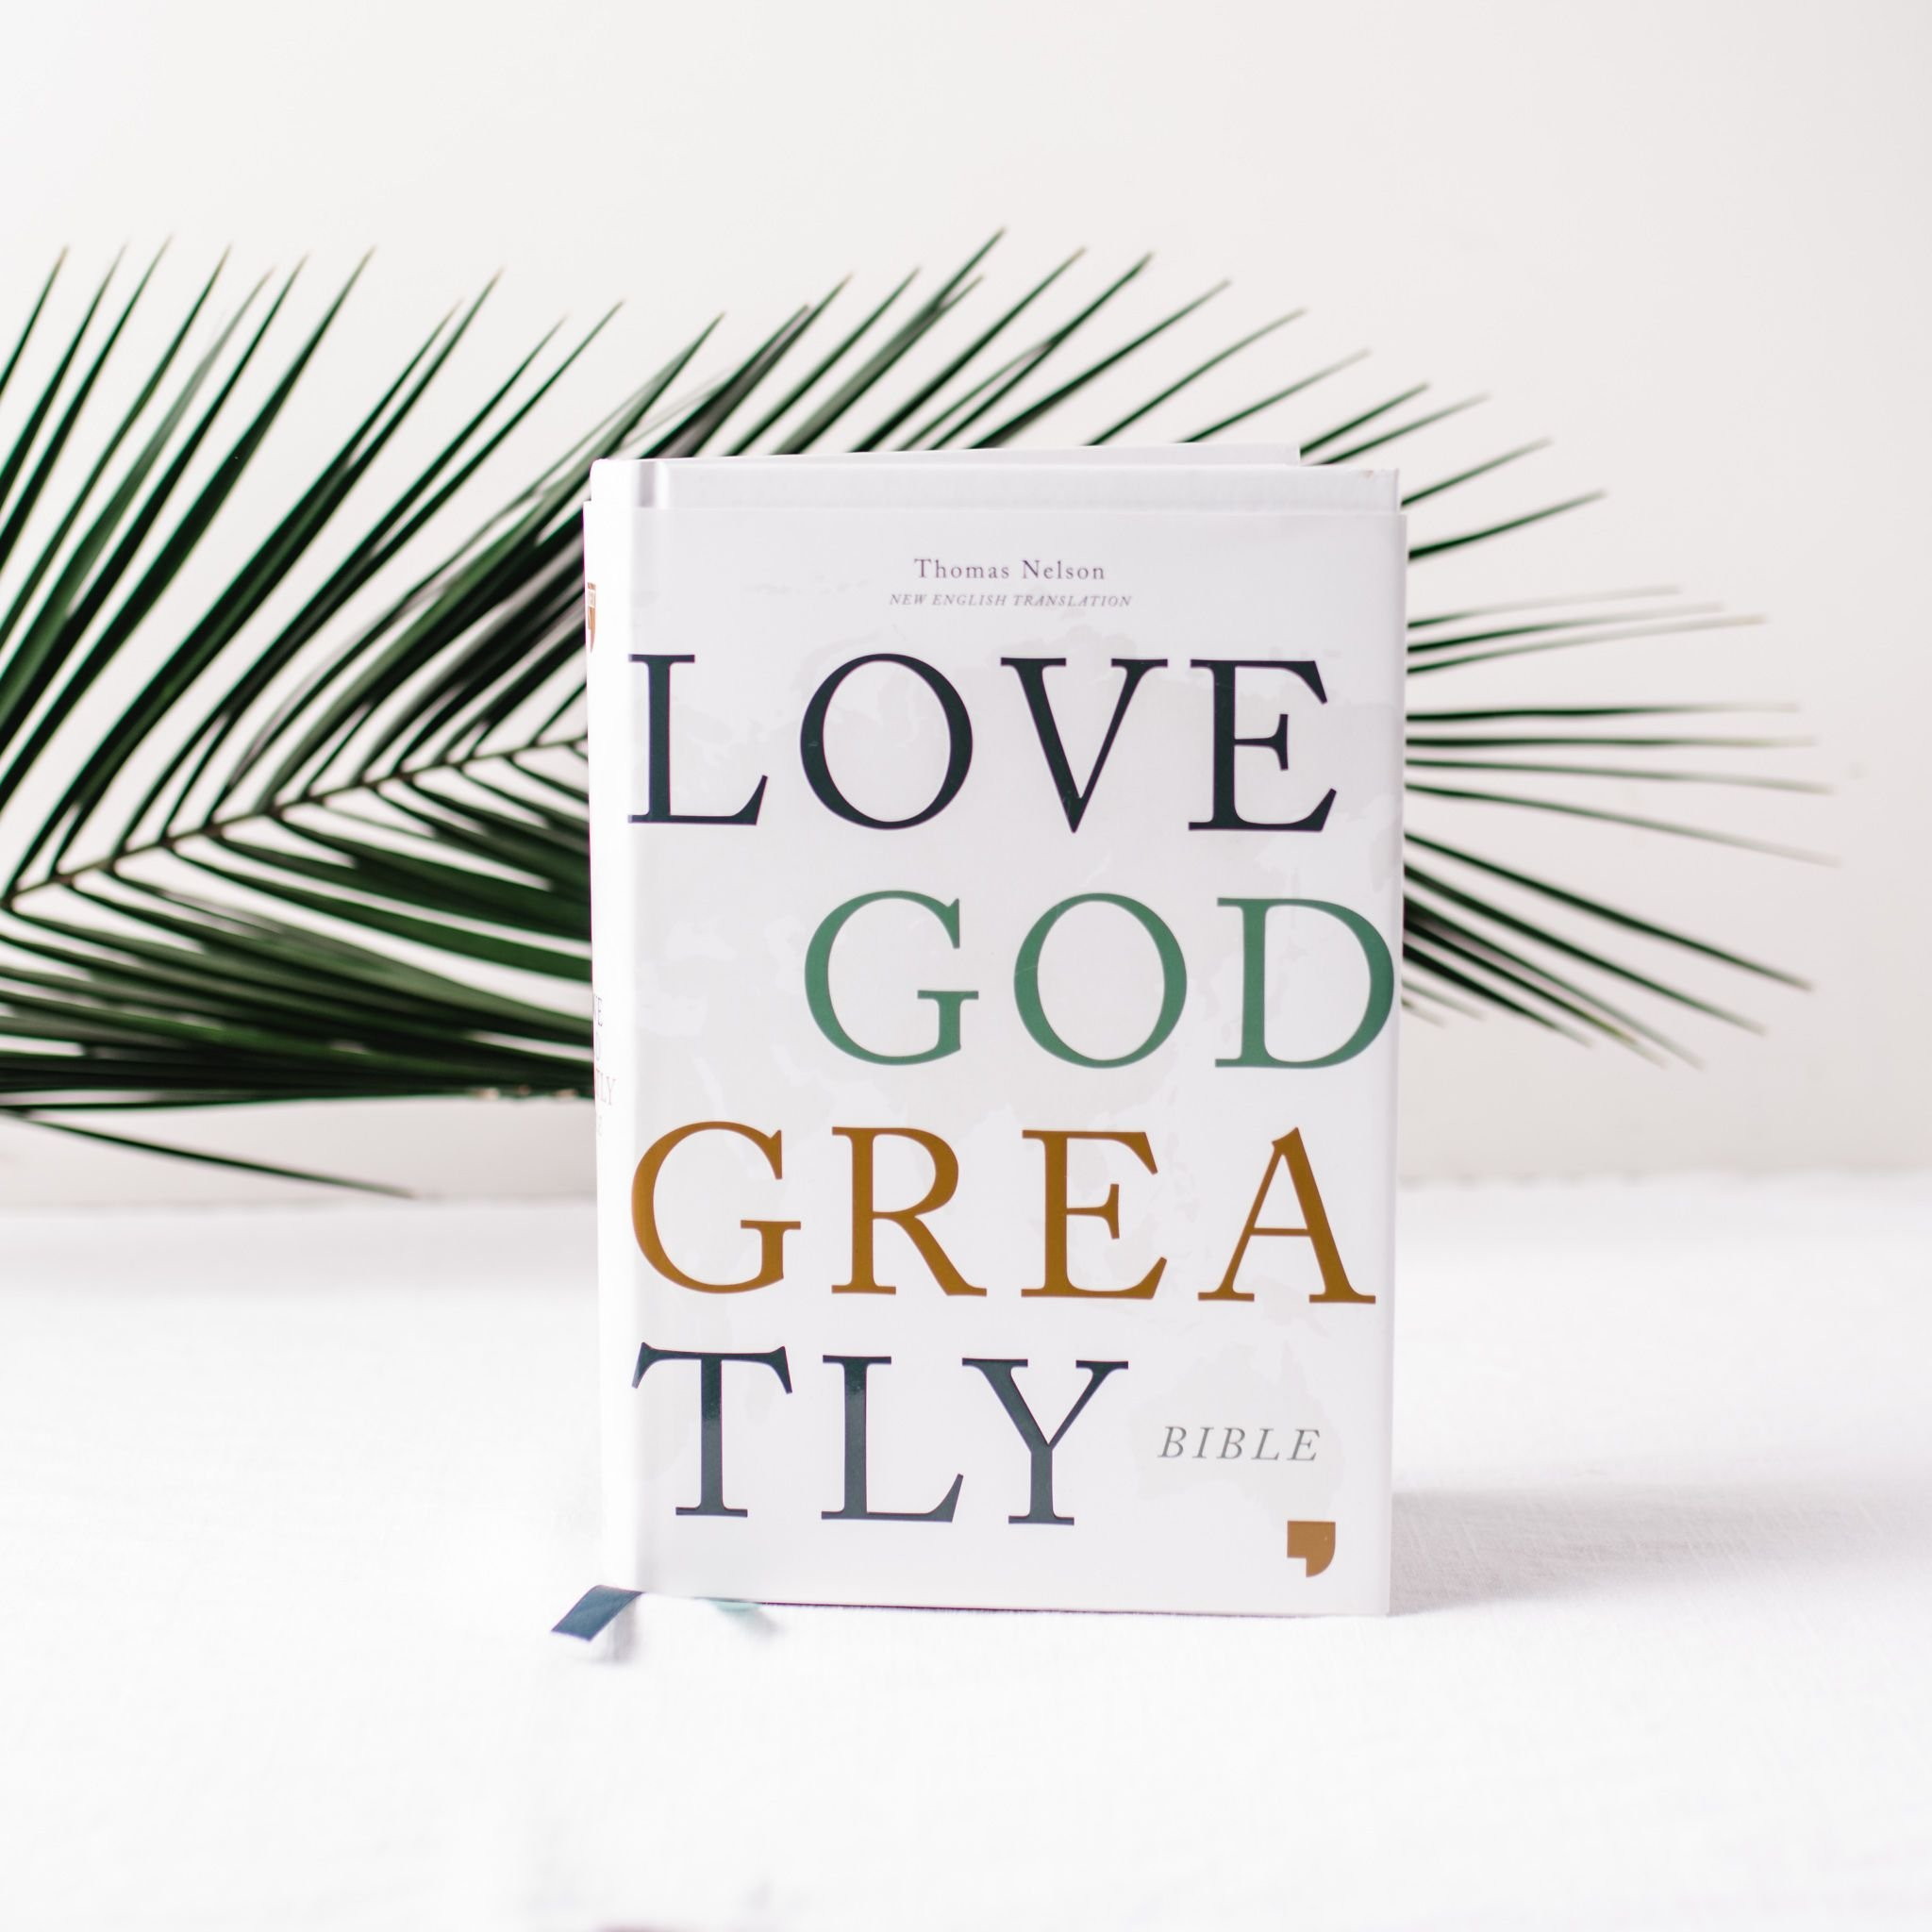 Love God Greatly Bible Printed Hardcover